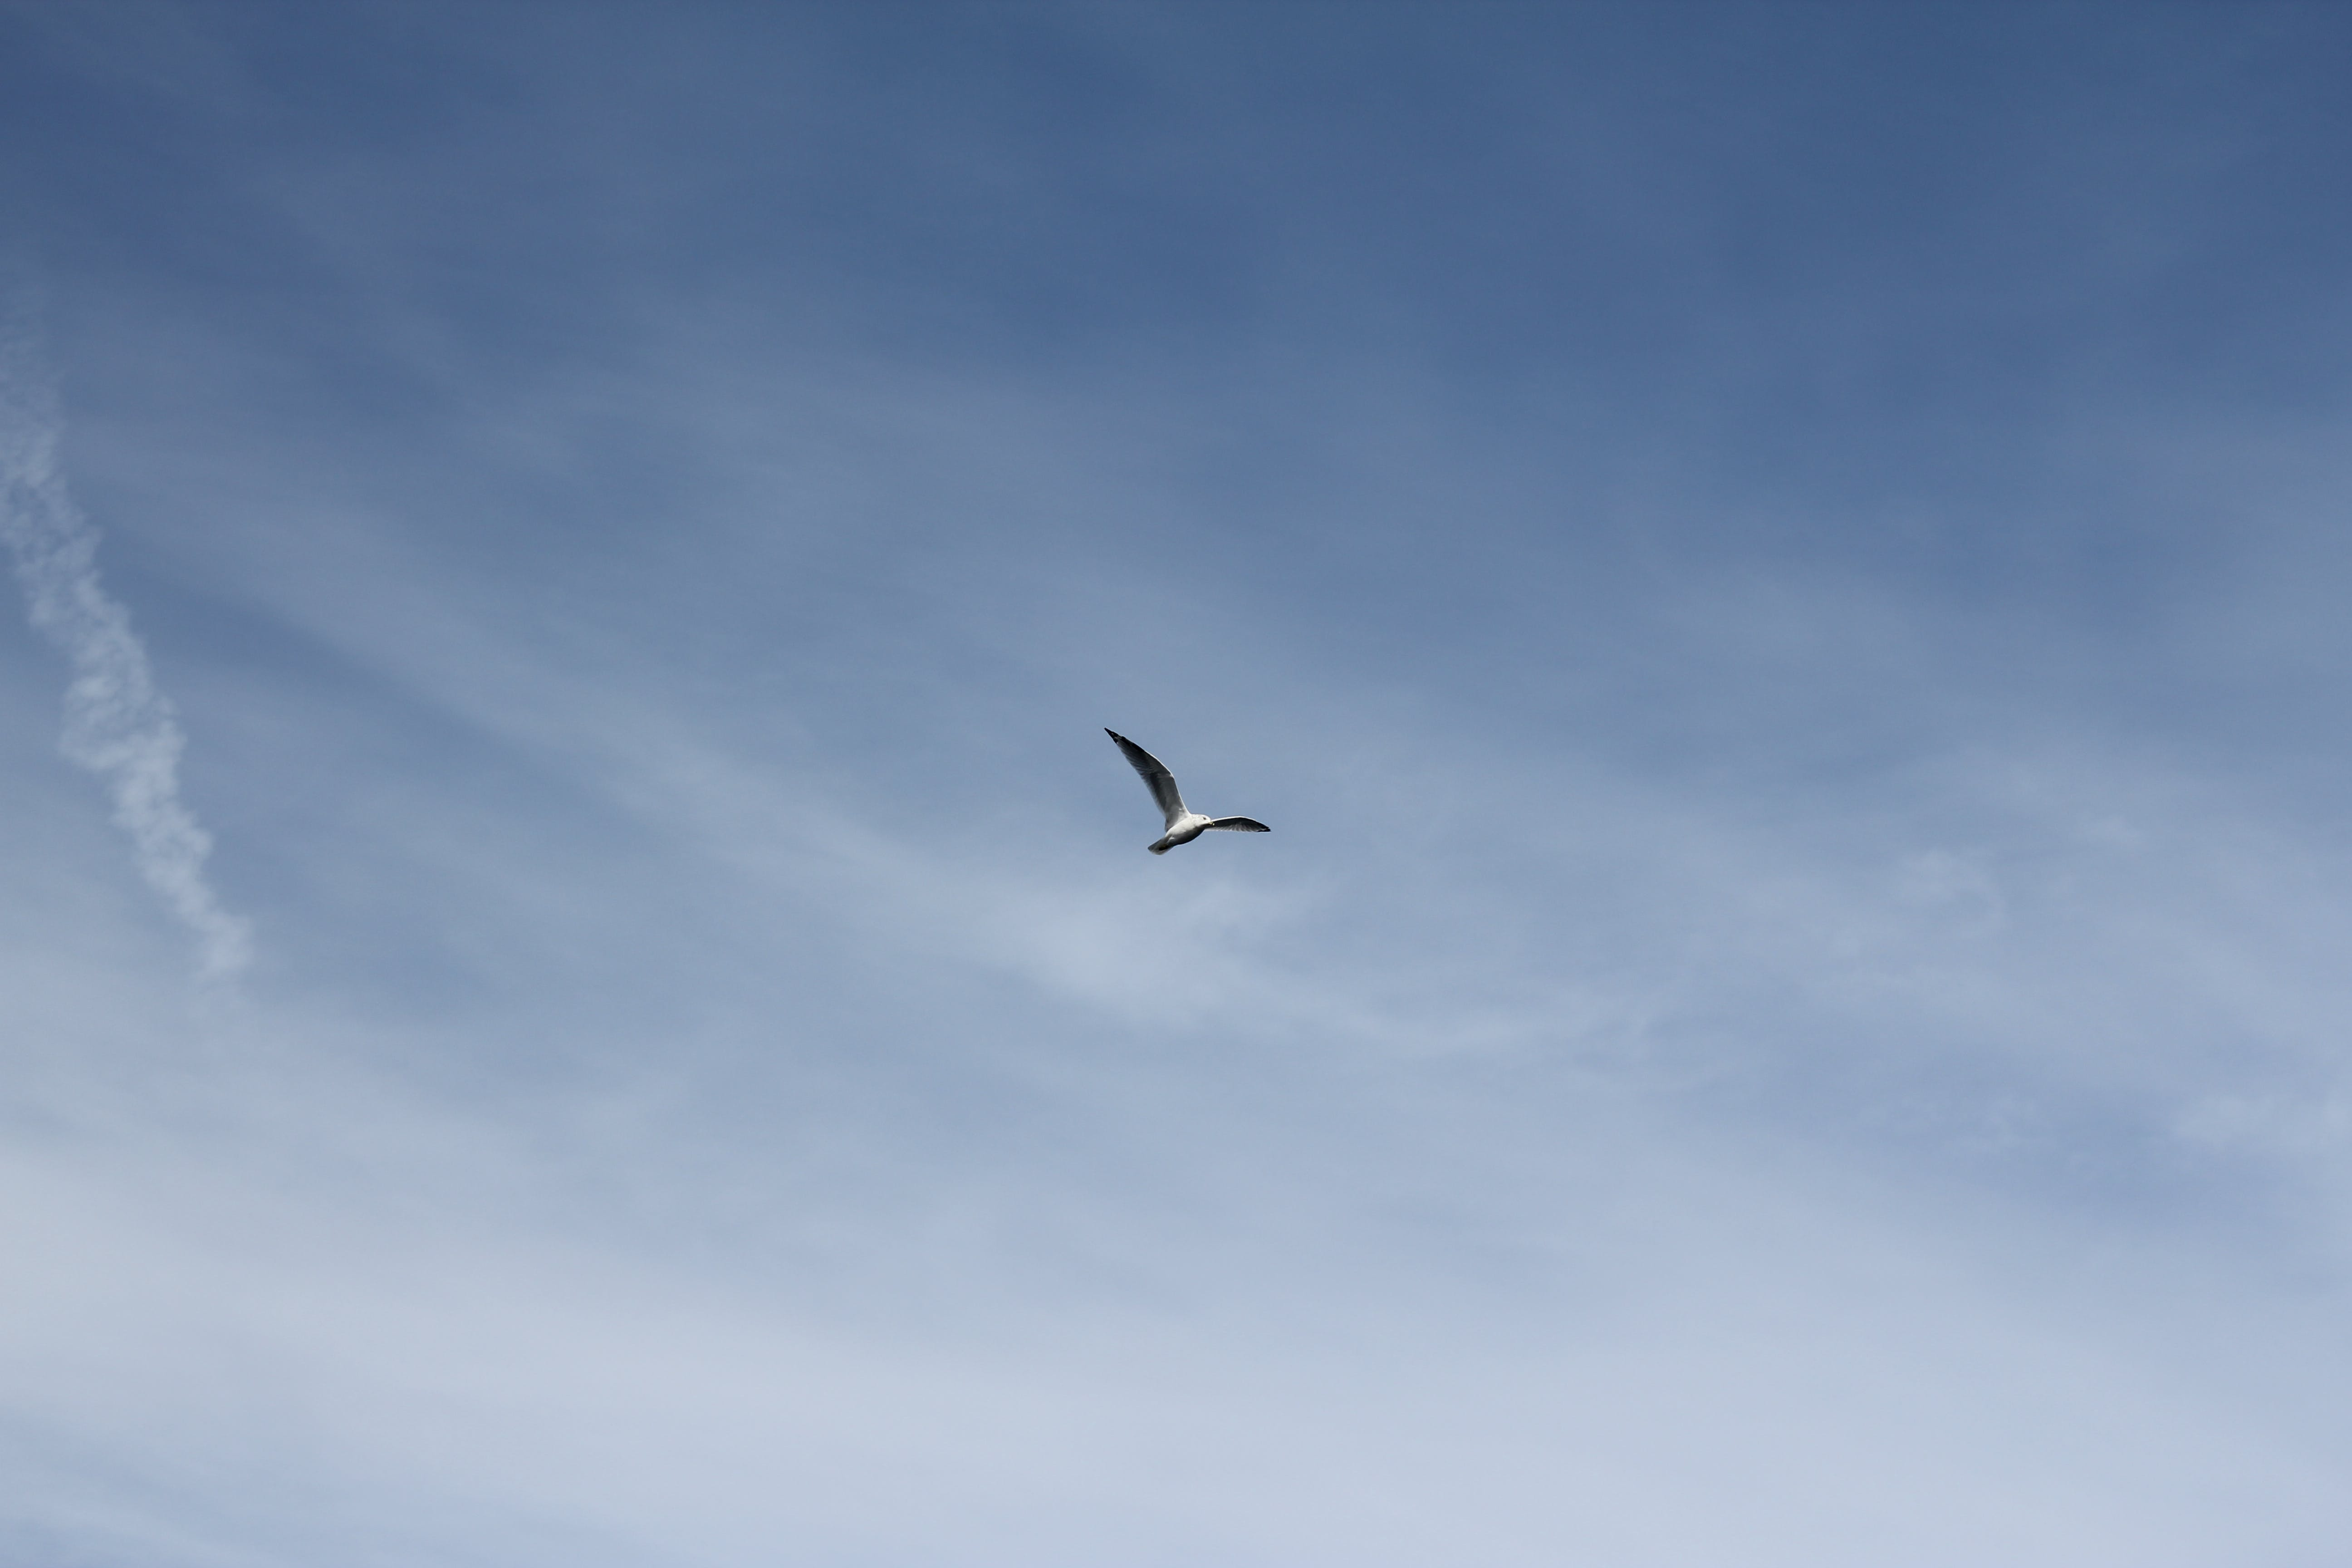 Low Angle Photography of White Bird Flying Under the Blue Sky